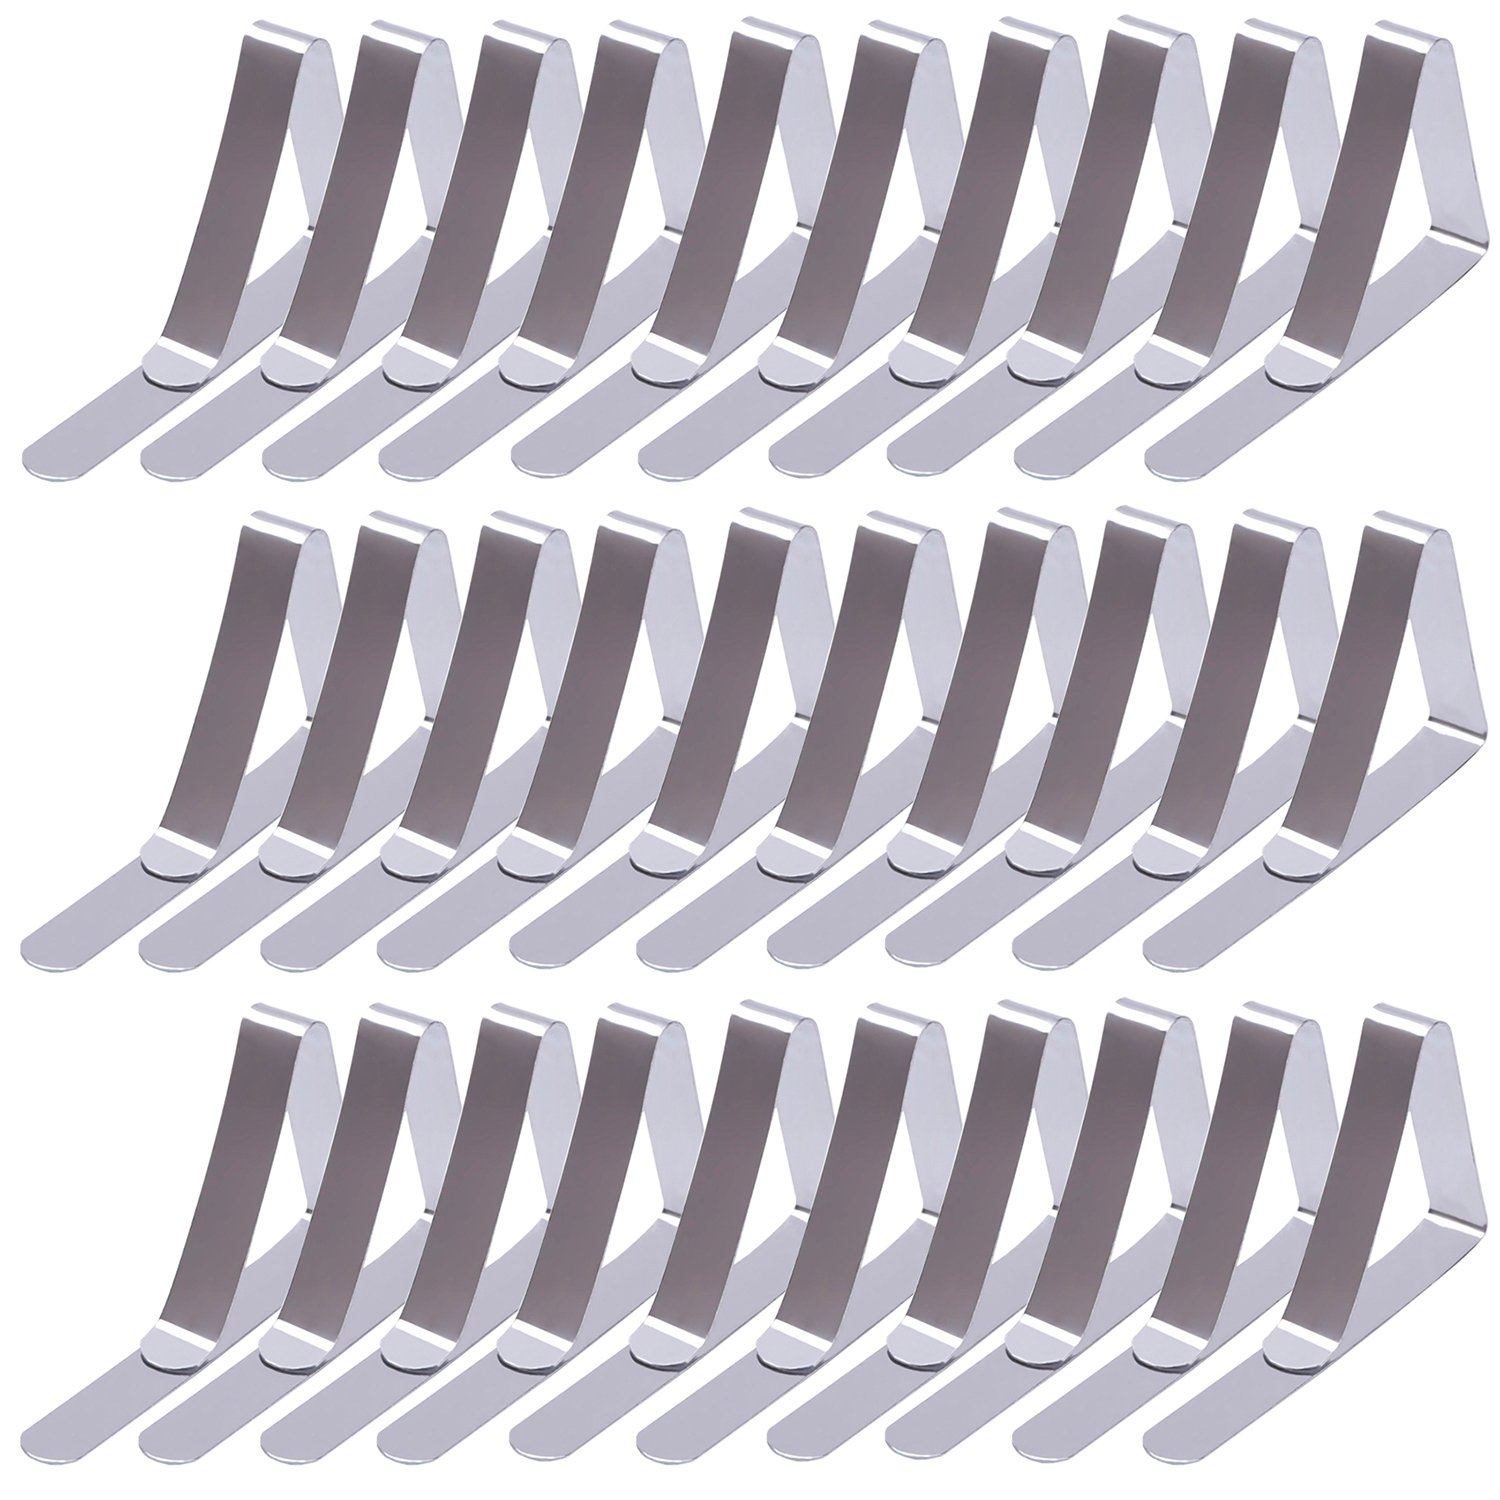 MOT Global Stainless Steel Tablecloth Clips Table Cloth Clamps for 1.77'' Thick Tables (Silver, Pack of 30)